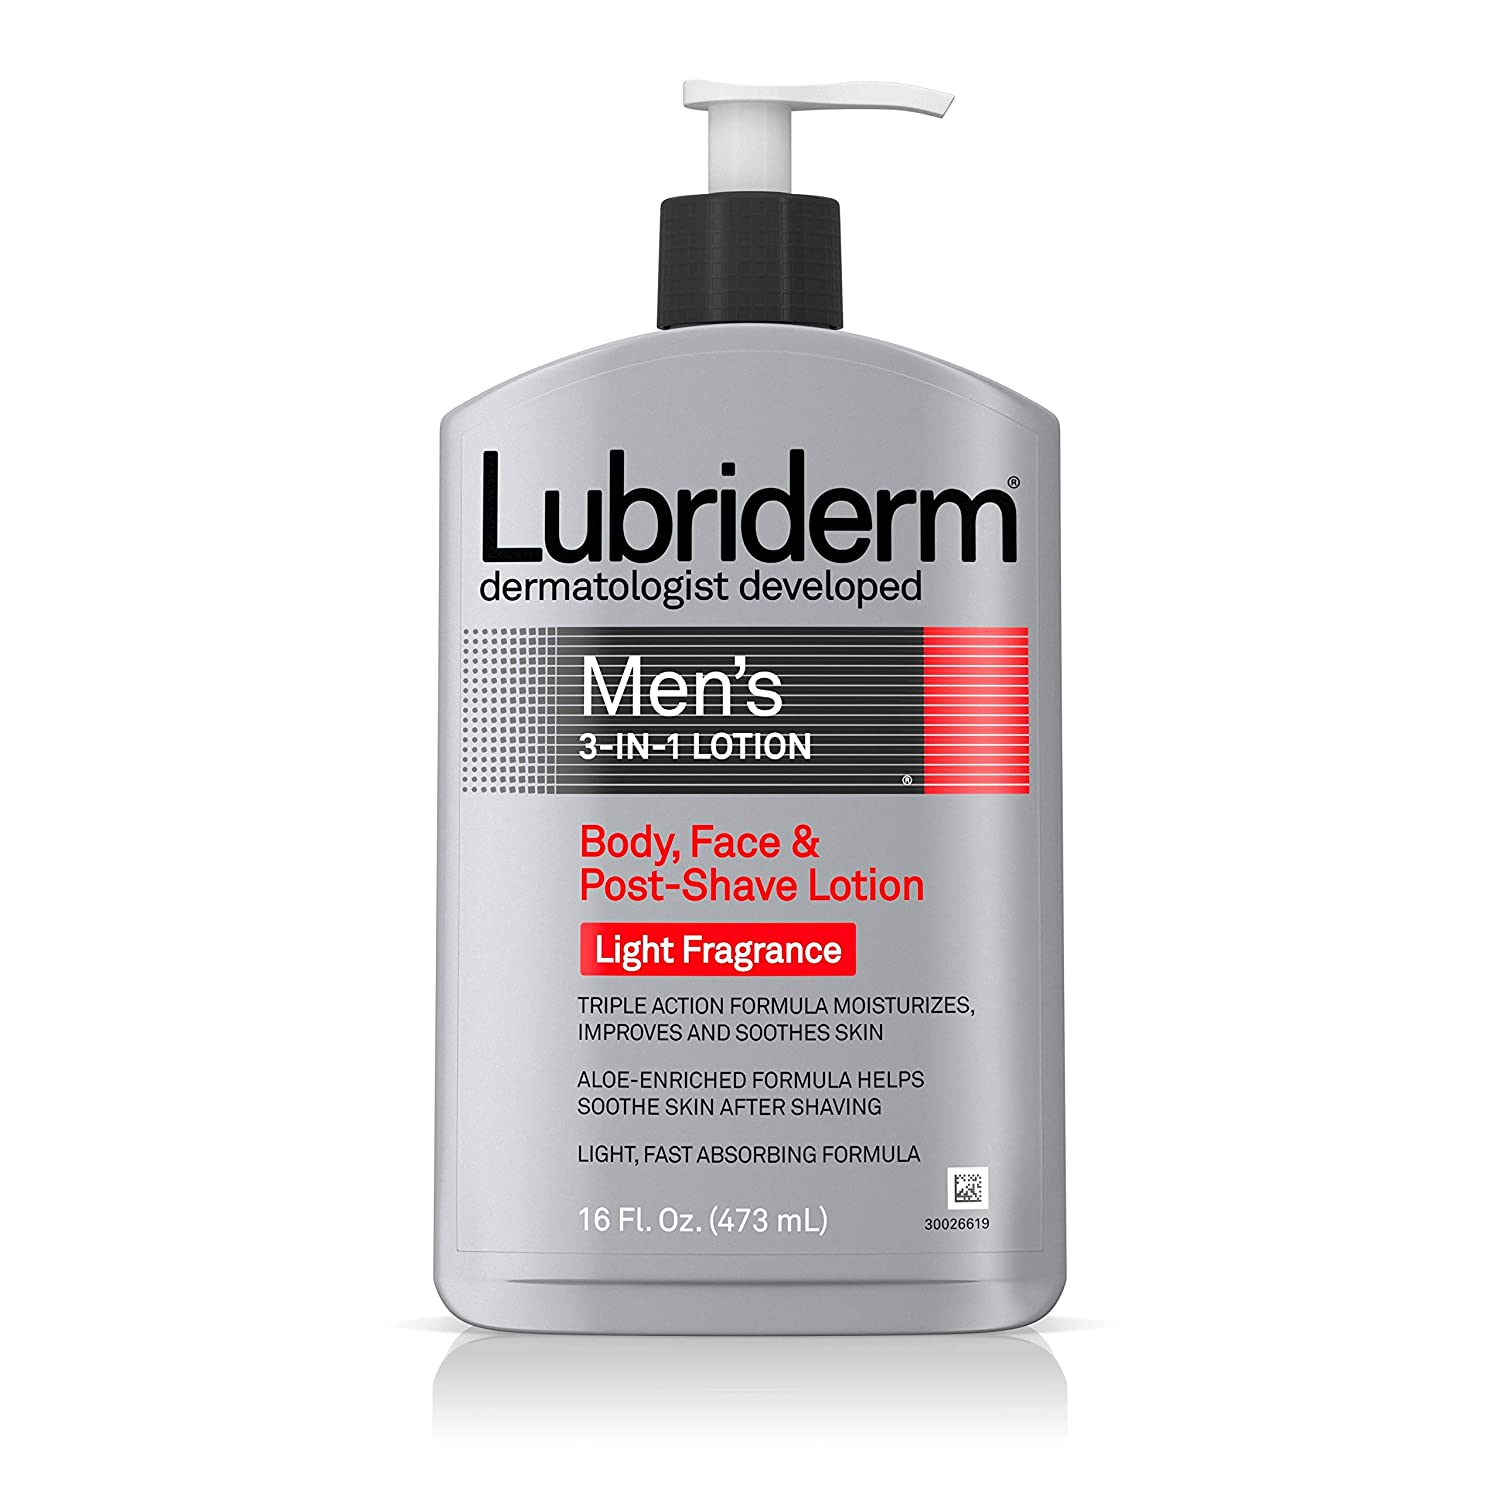 Lubriderm Men's 3-in-1 Lotion, Body, Face and Post-shave Lotion, Light Fragrance, 16 Ounce (Pack of 2)